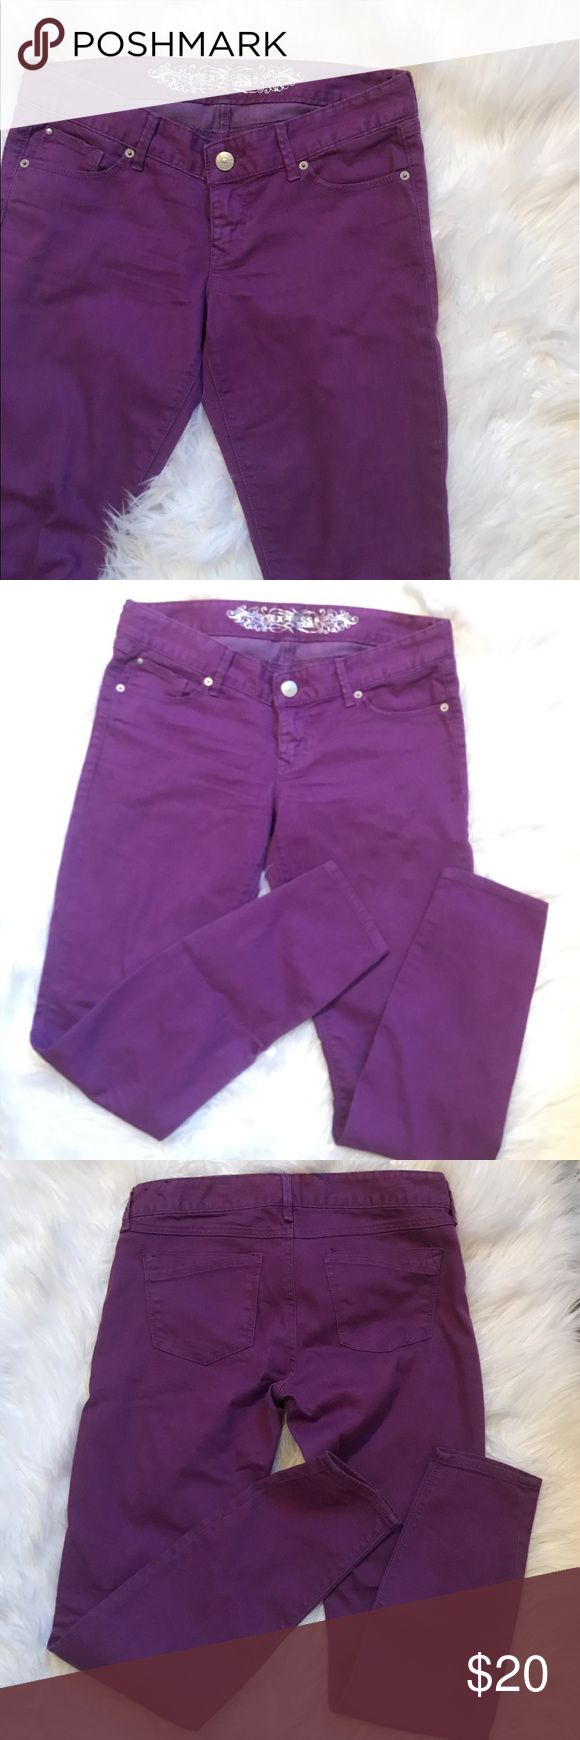 Express Purple Skinny Leg Pants Size 8 Your favorite skinny jeans! Super comfy and super cute! Pretty purple color. Size 8. Great condition Express Pants Skinny